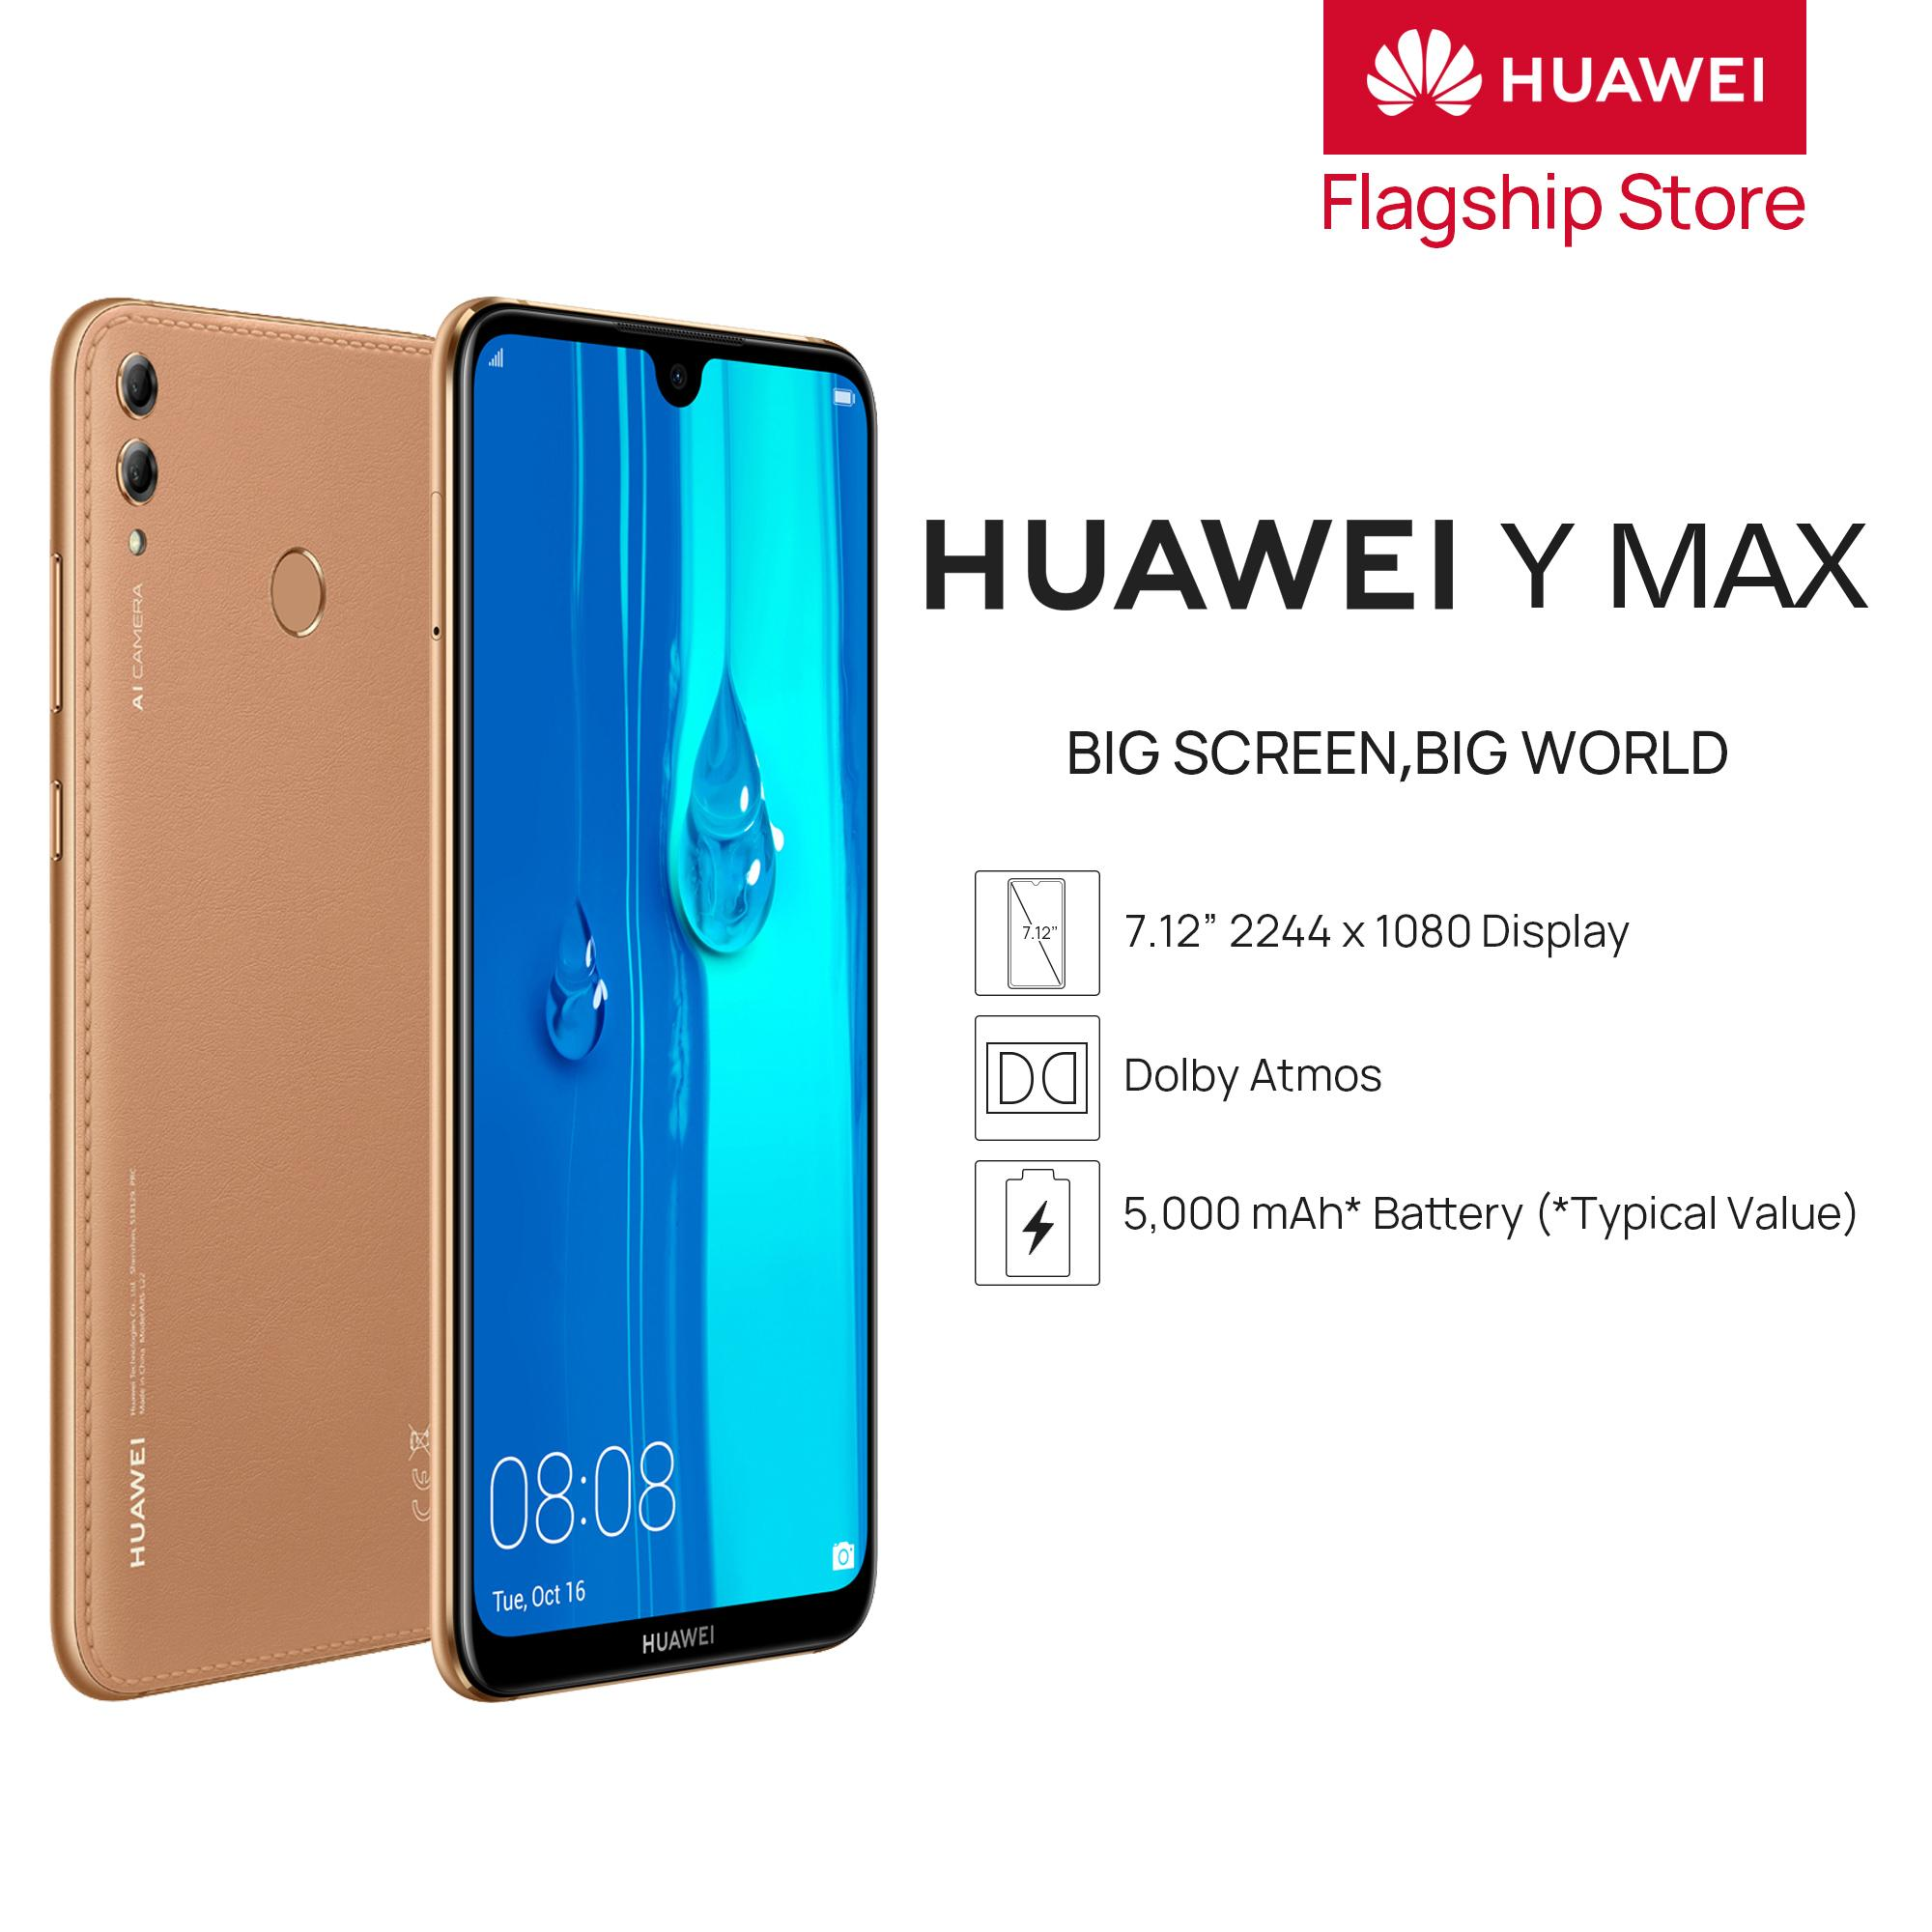 Huawei Y Max 128GB — 4GB 7 12 inches FHD Screen Smart Phone